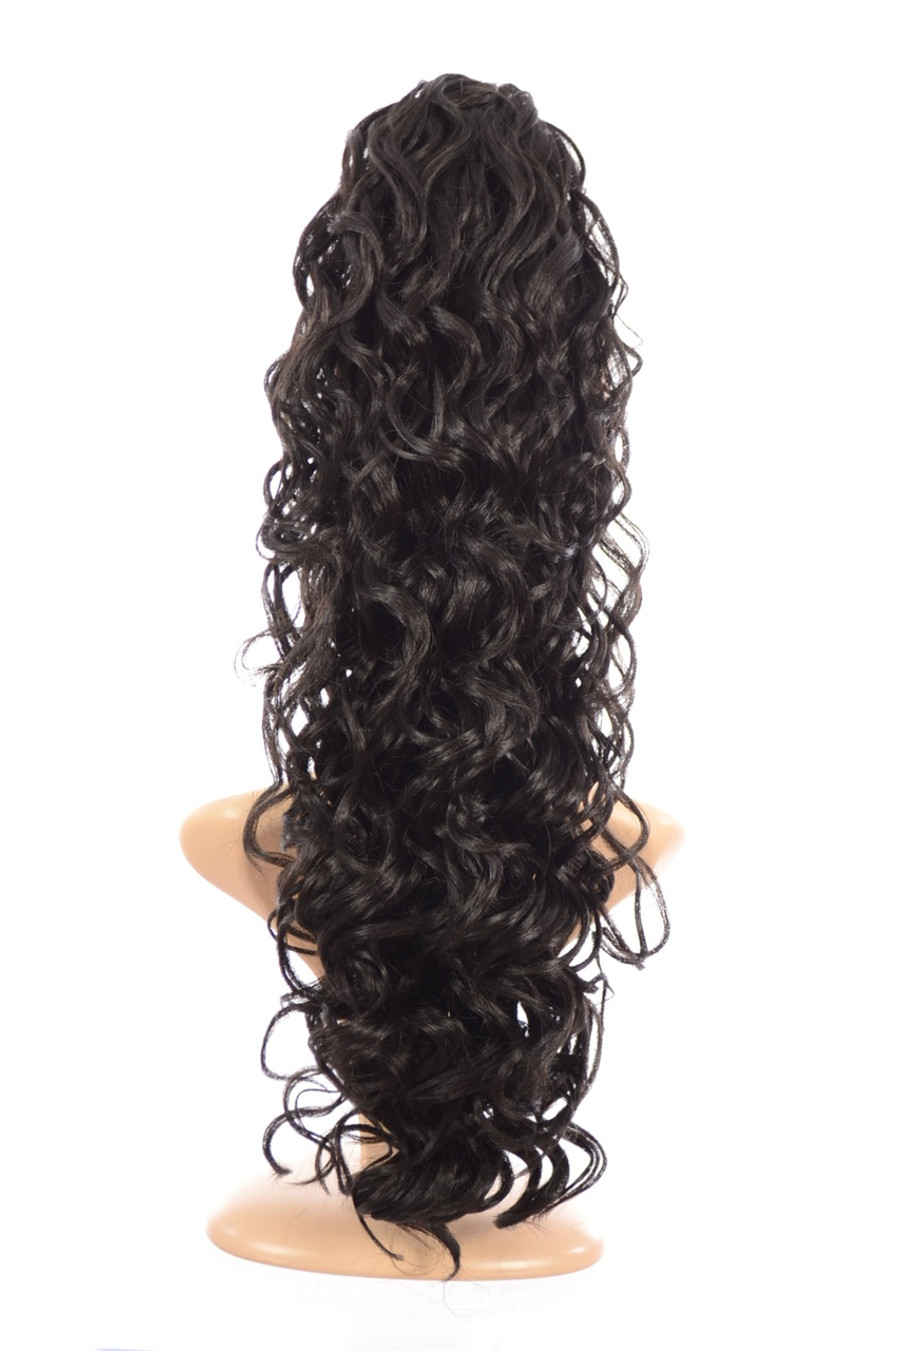 Claw Grip Ringlet Curly Hair Piece Ponytail Clip: Expresso